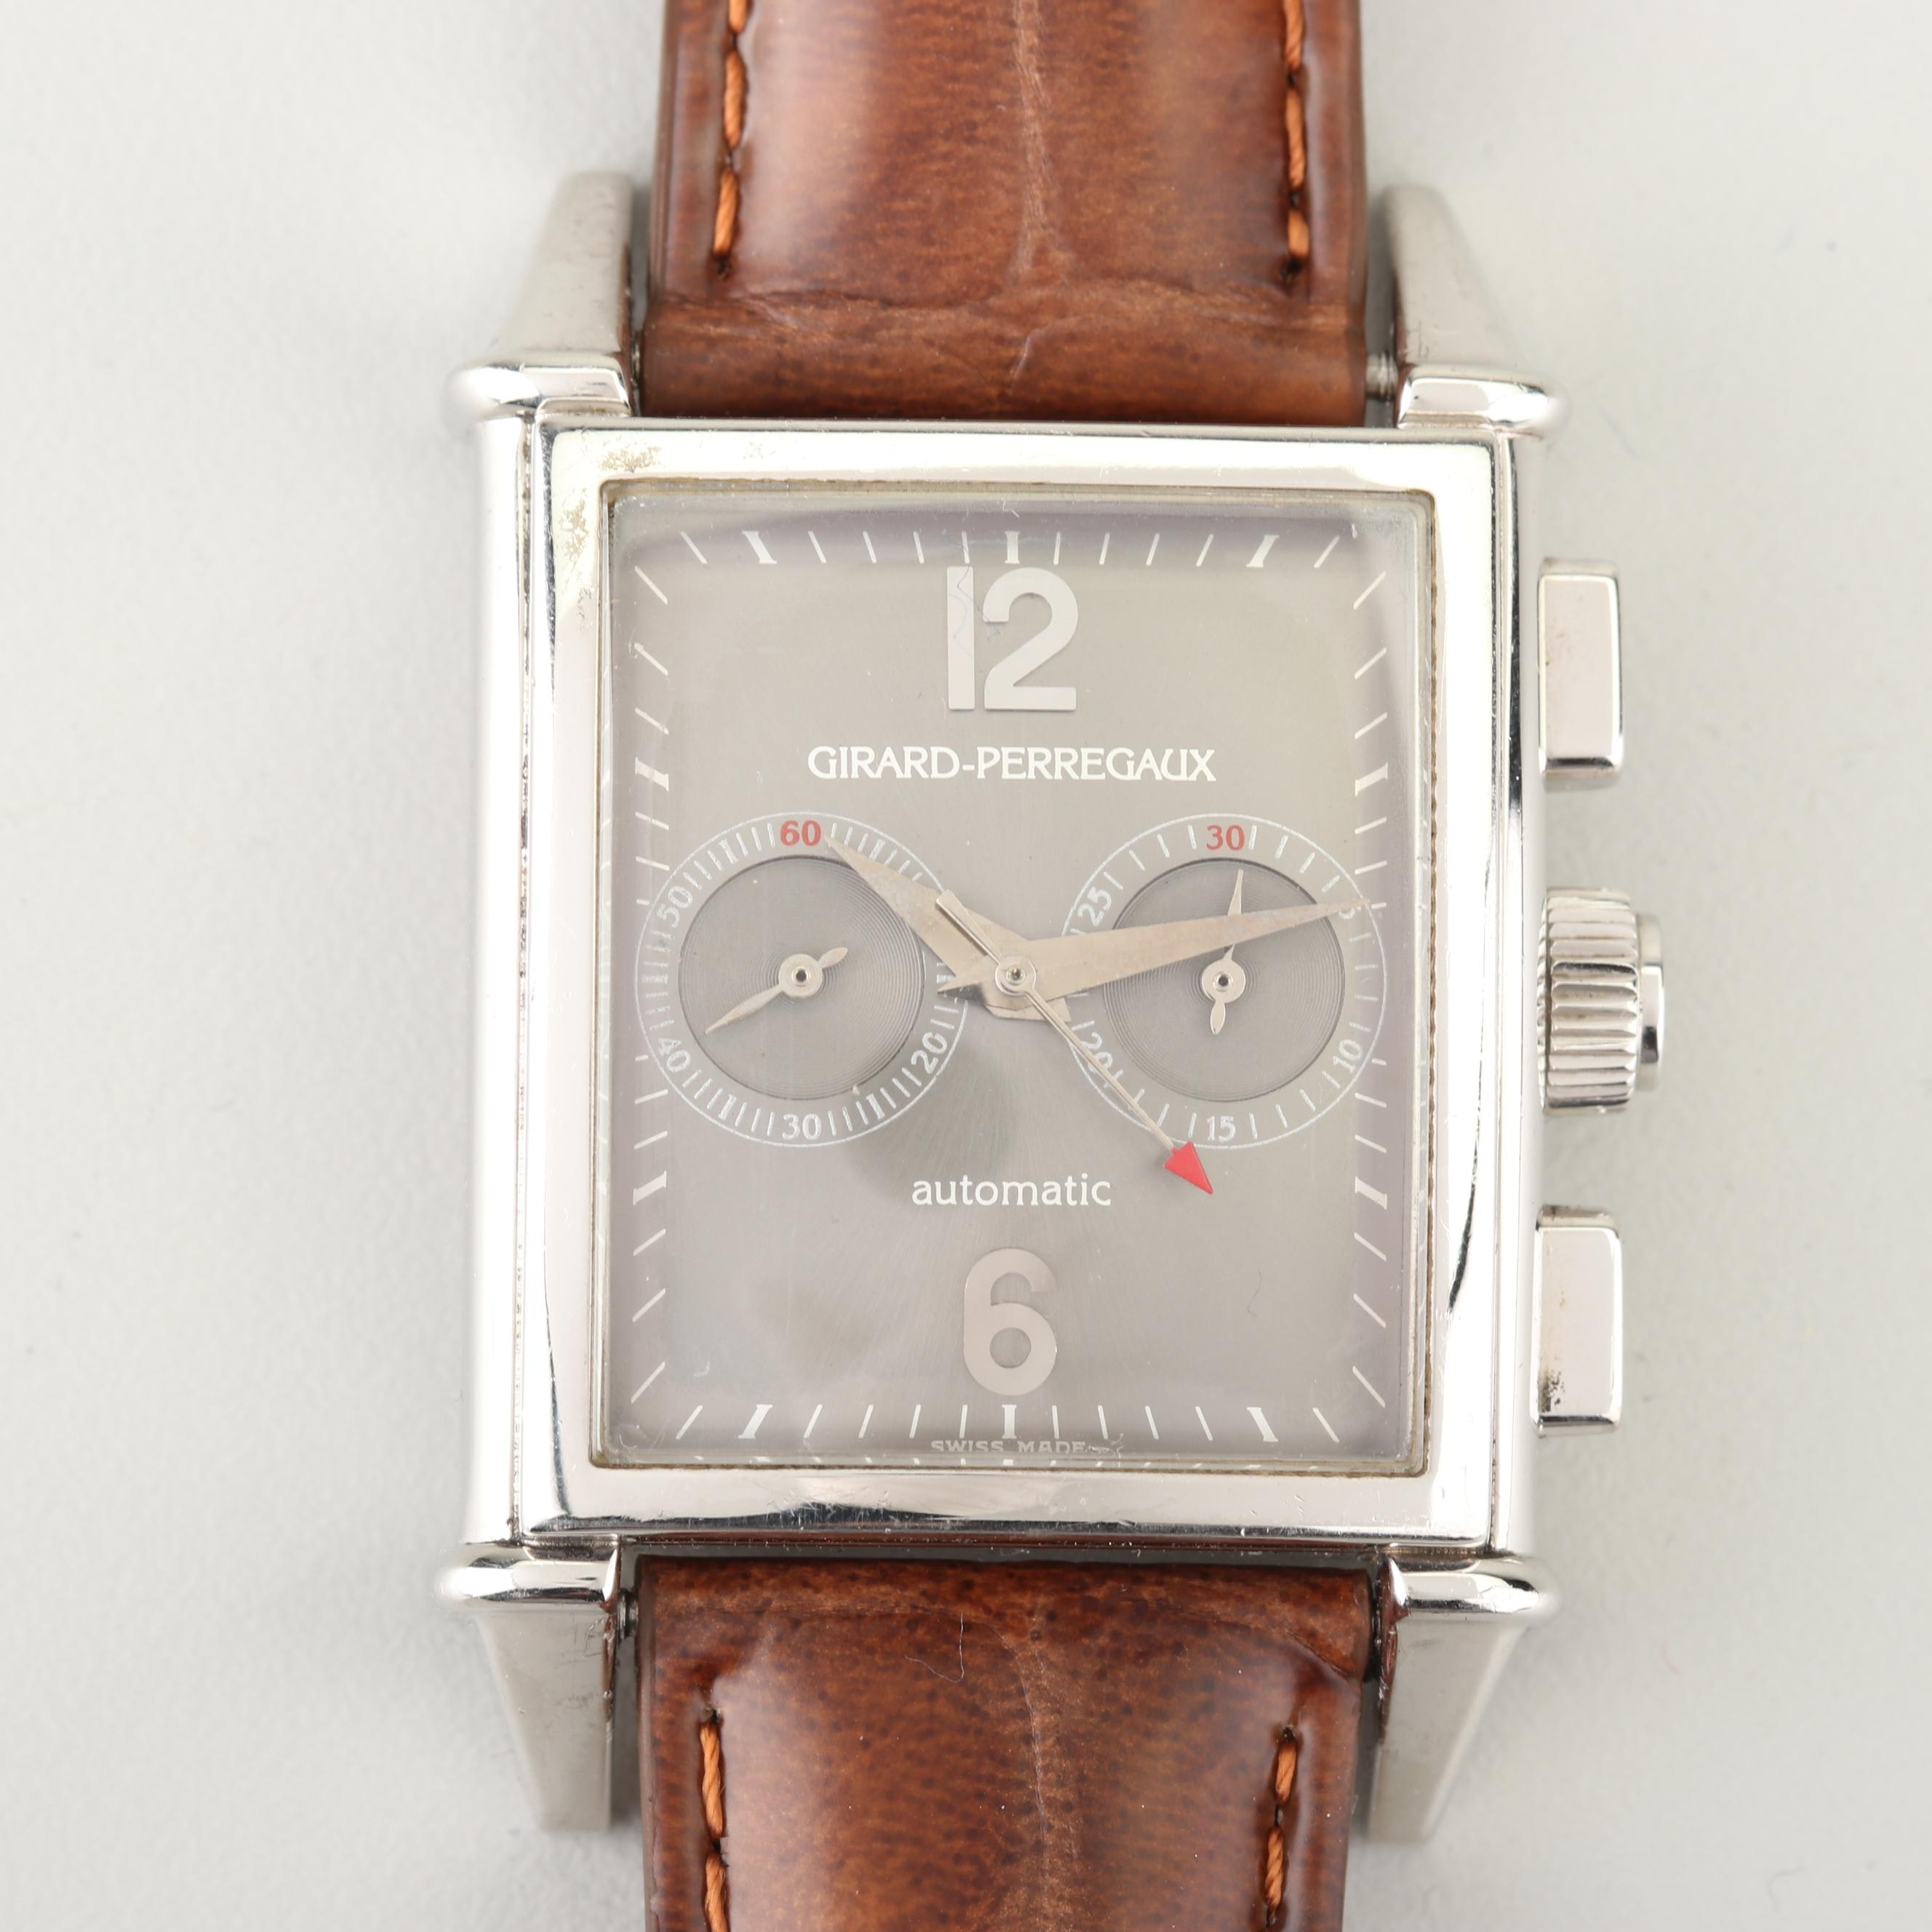 Girard-Perregaux Automatic Platinum and Leather Wristwatch